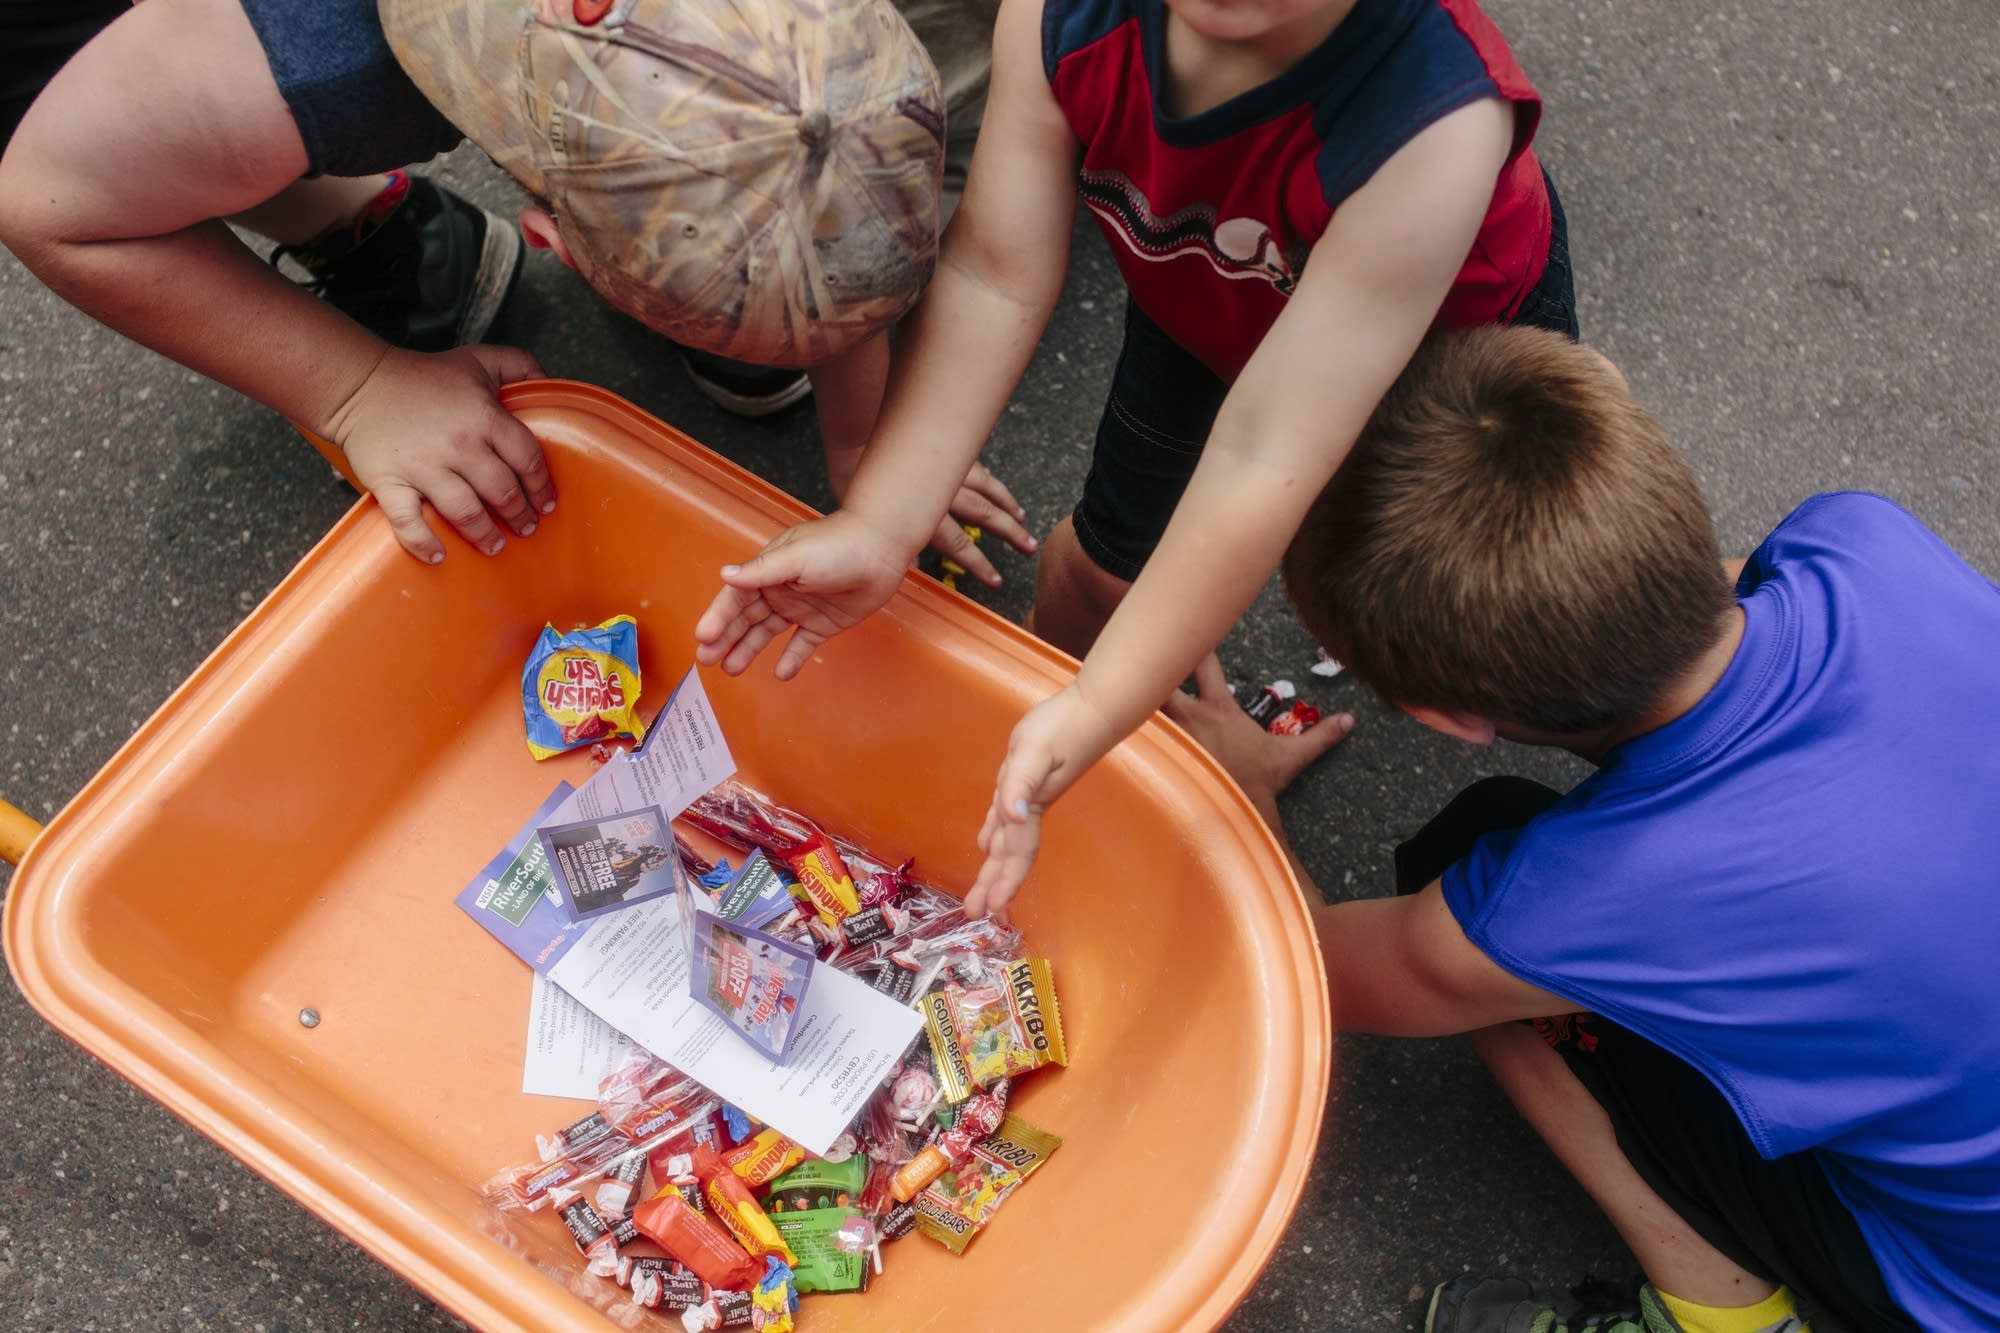 Kids load candy into a miniature wheelbarrow.